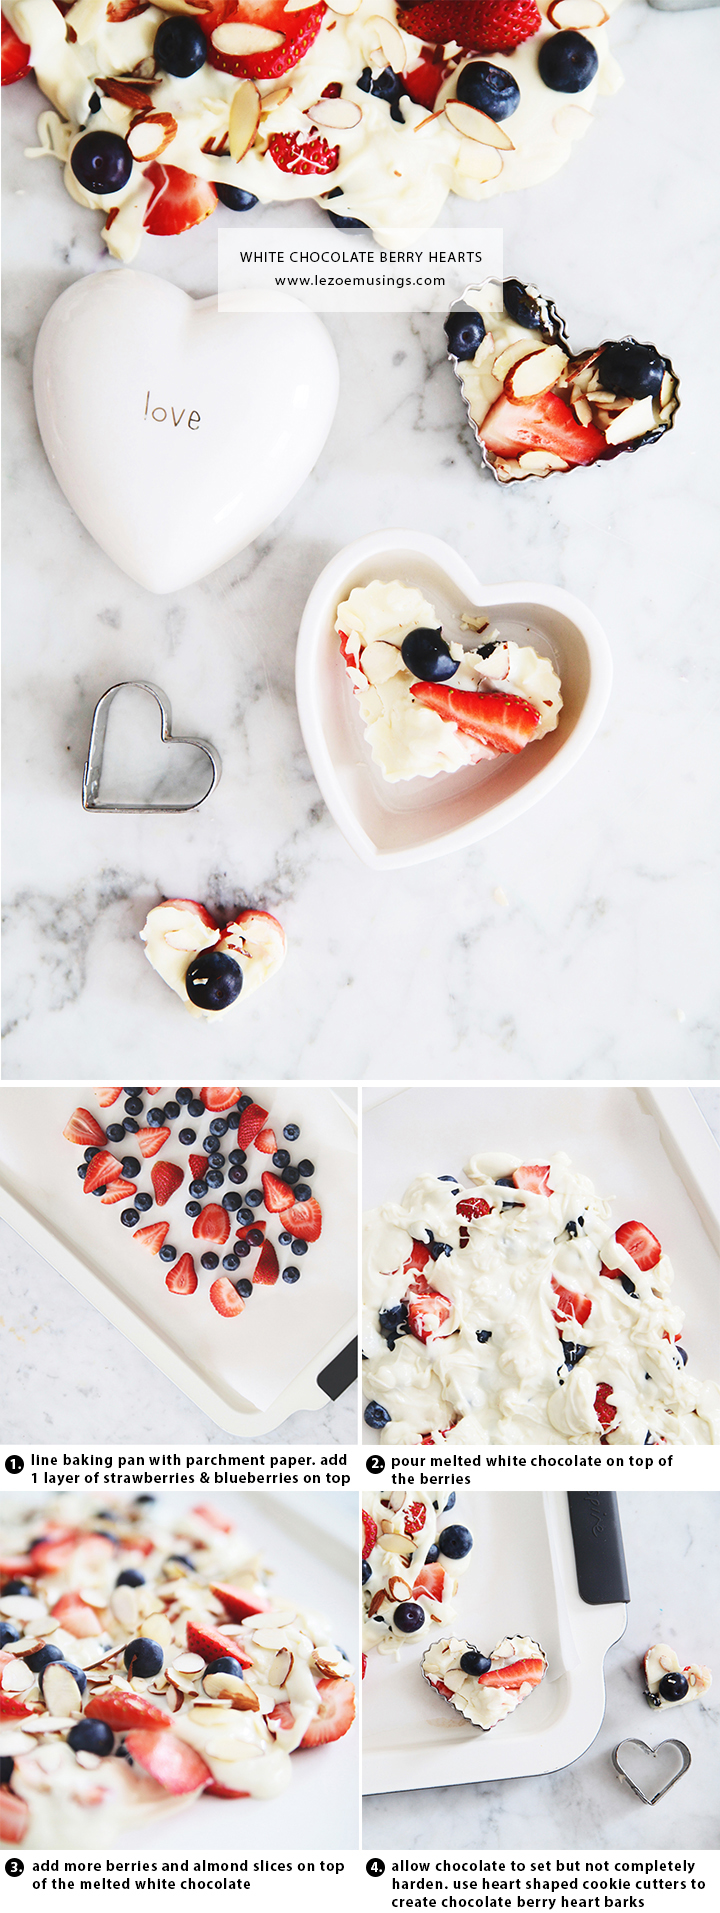 White Chocolate Berry Hearts Valentine's Treats by Le Zoe Musings_steps